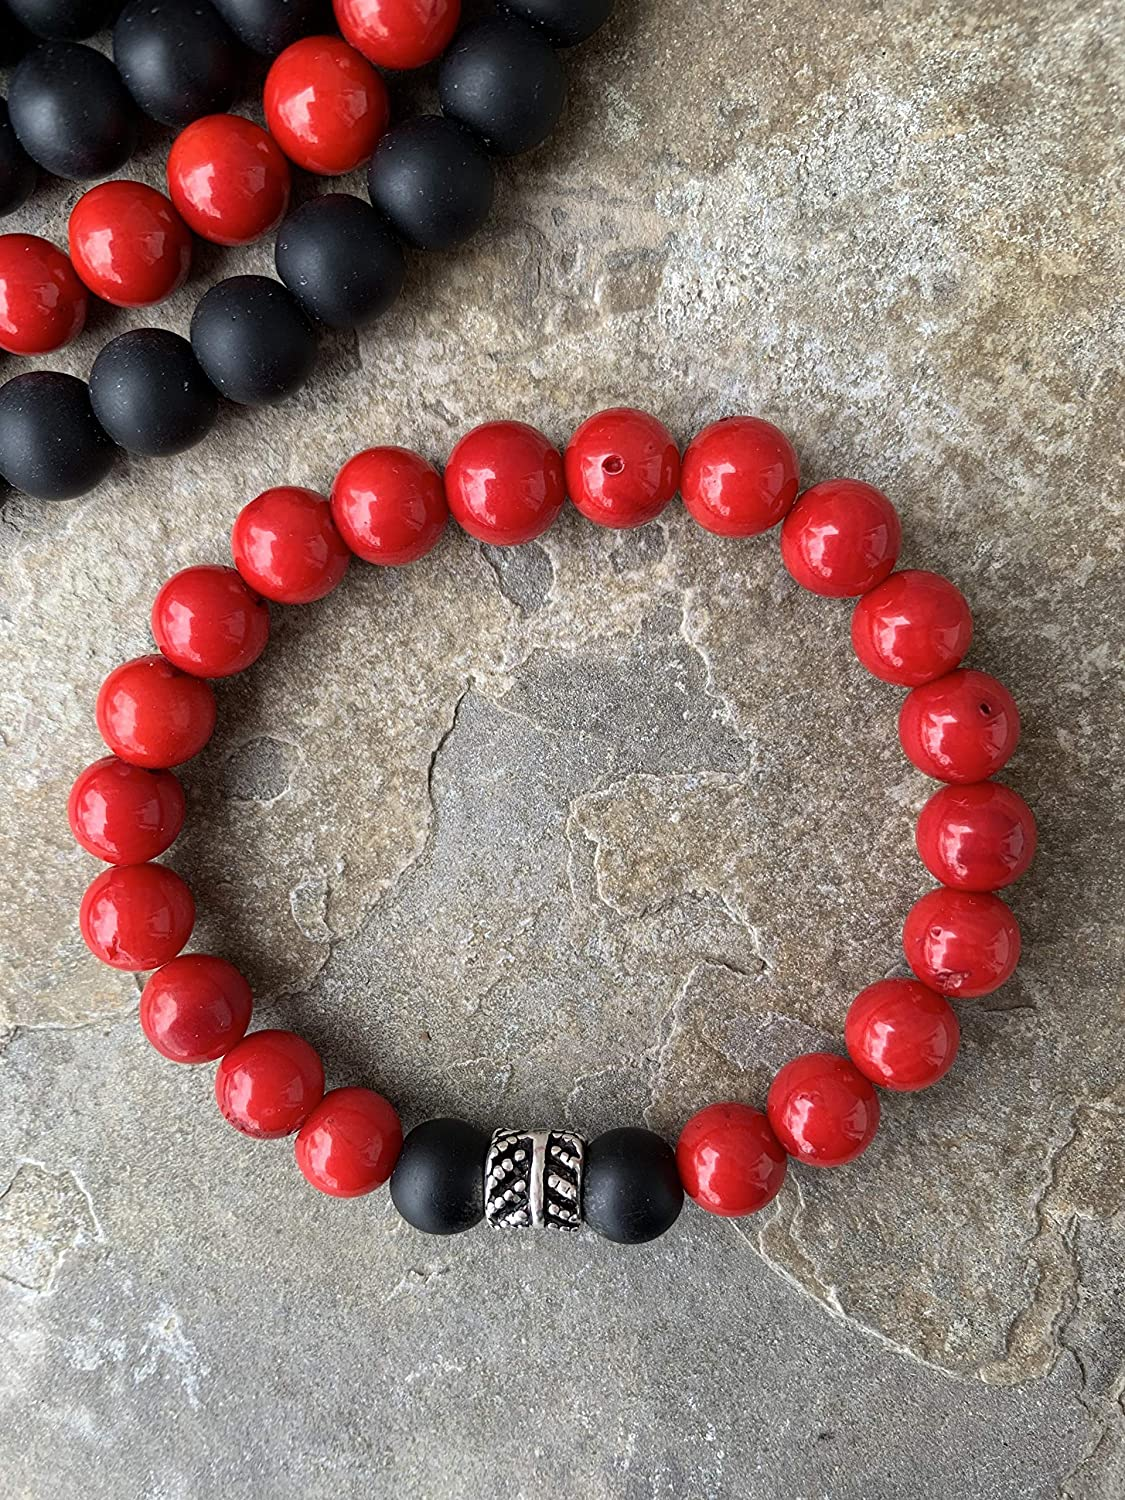 Black Onyx and Sea Bamboo Red Stretch Max 67% OFF Coral Bracelet wi Gemstone Very popular